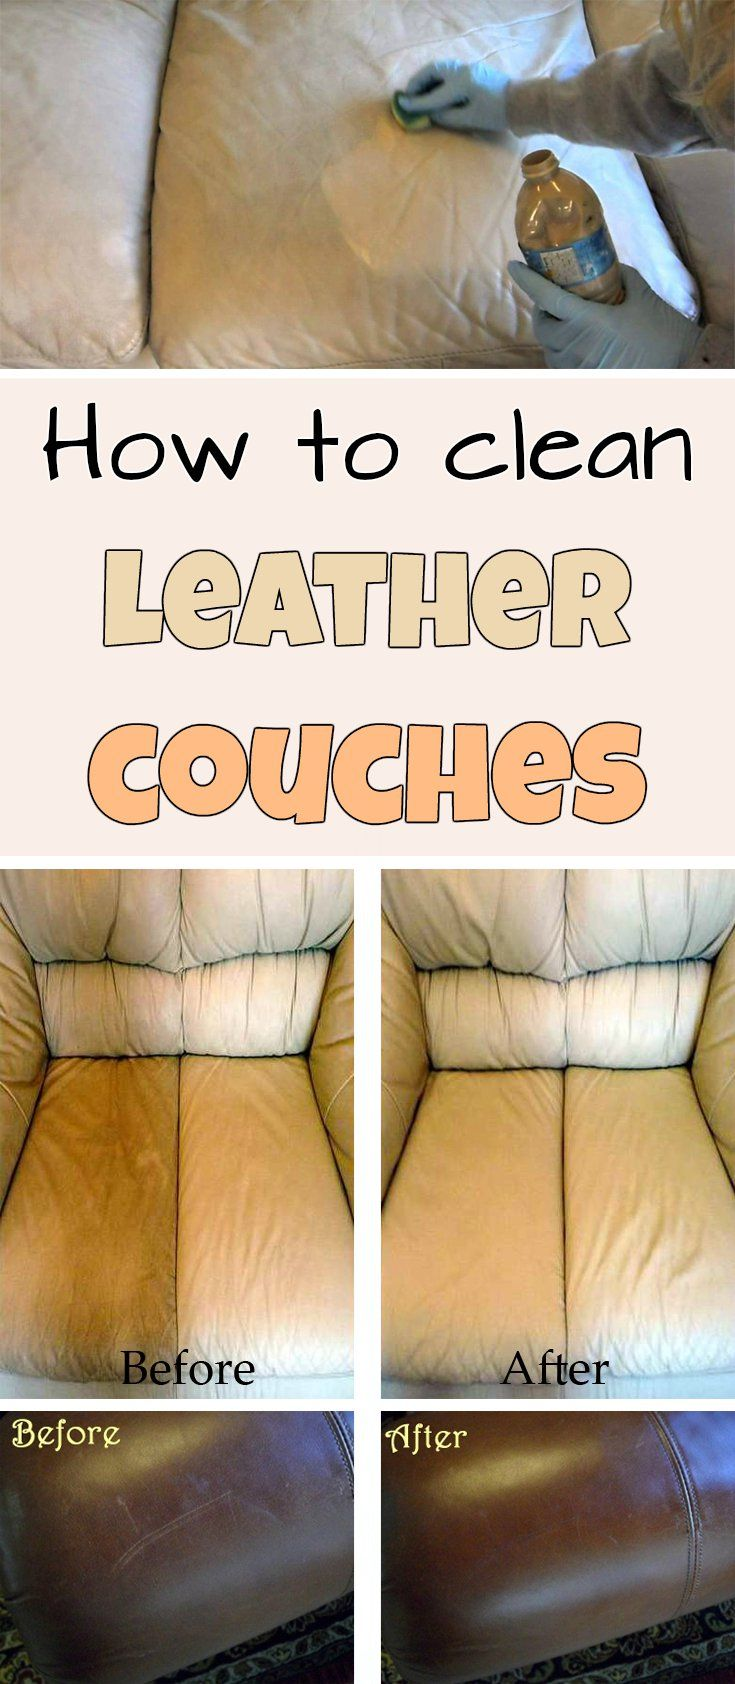 How To Clean Leather Couches Mycleaningsolutions Com Cleaning